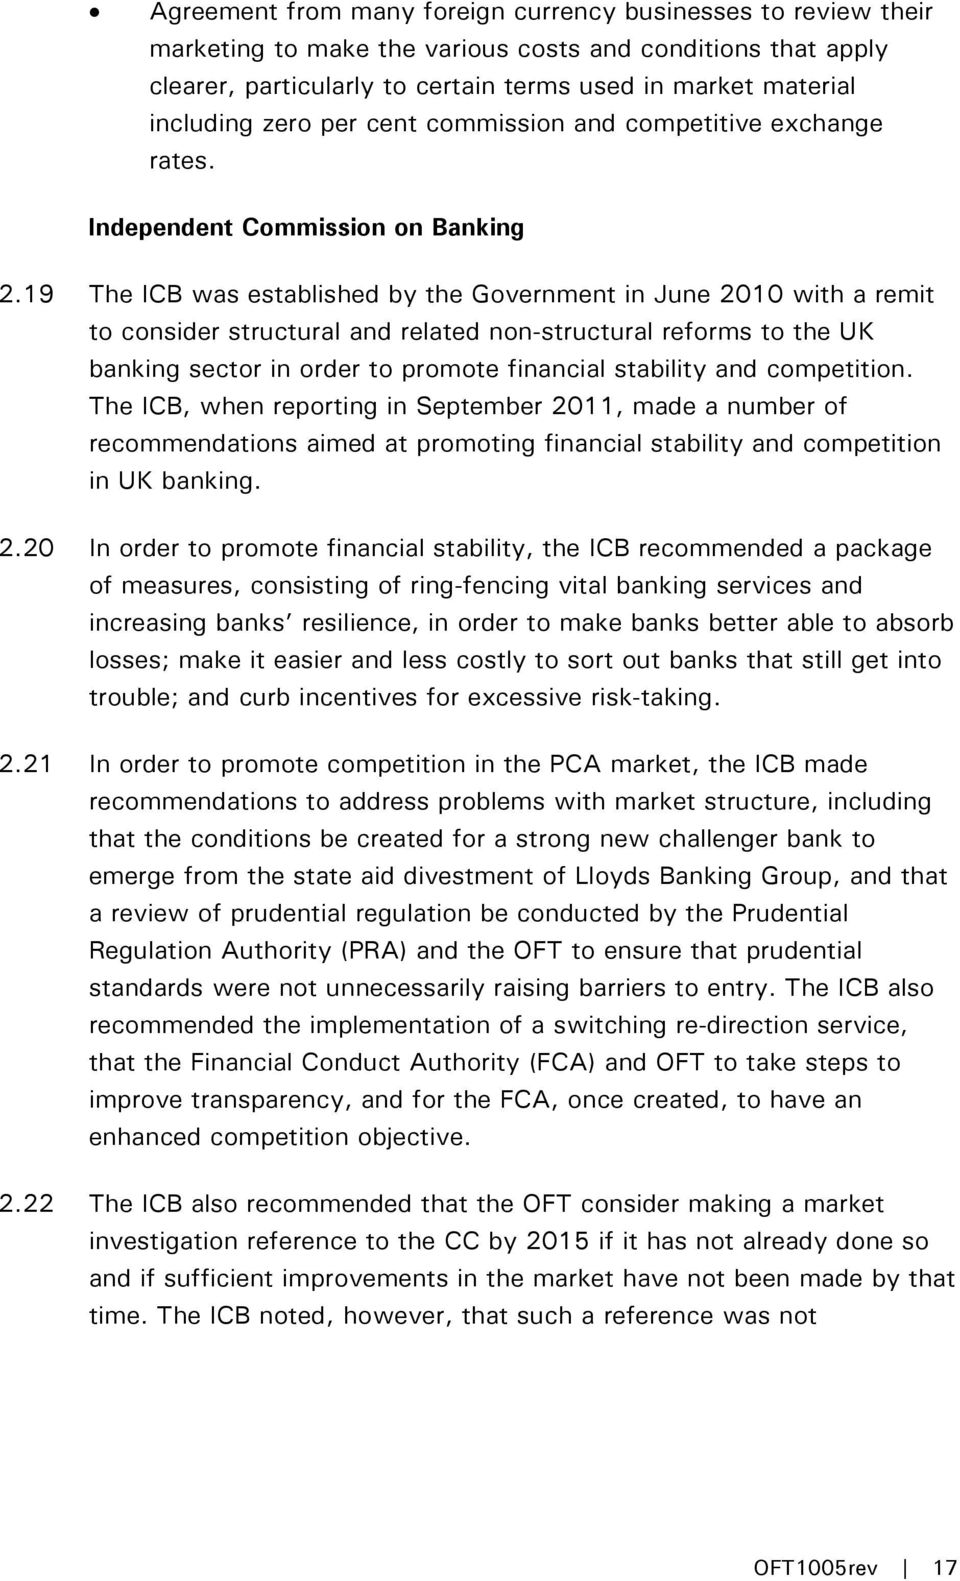 19 The ICB was established by the Government in June 2010 with a remit to consider structural and related non-structural reforms to the UK banking sector in order to promote financial stability and